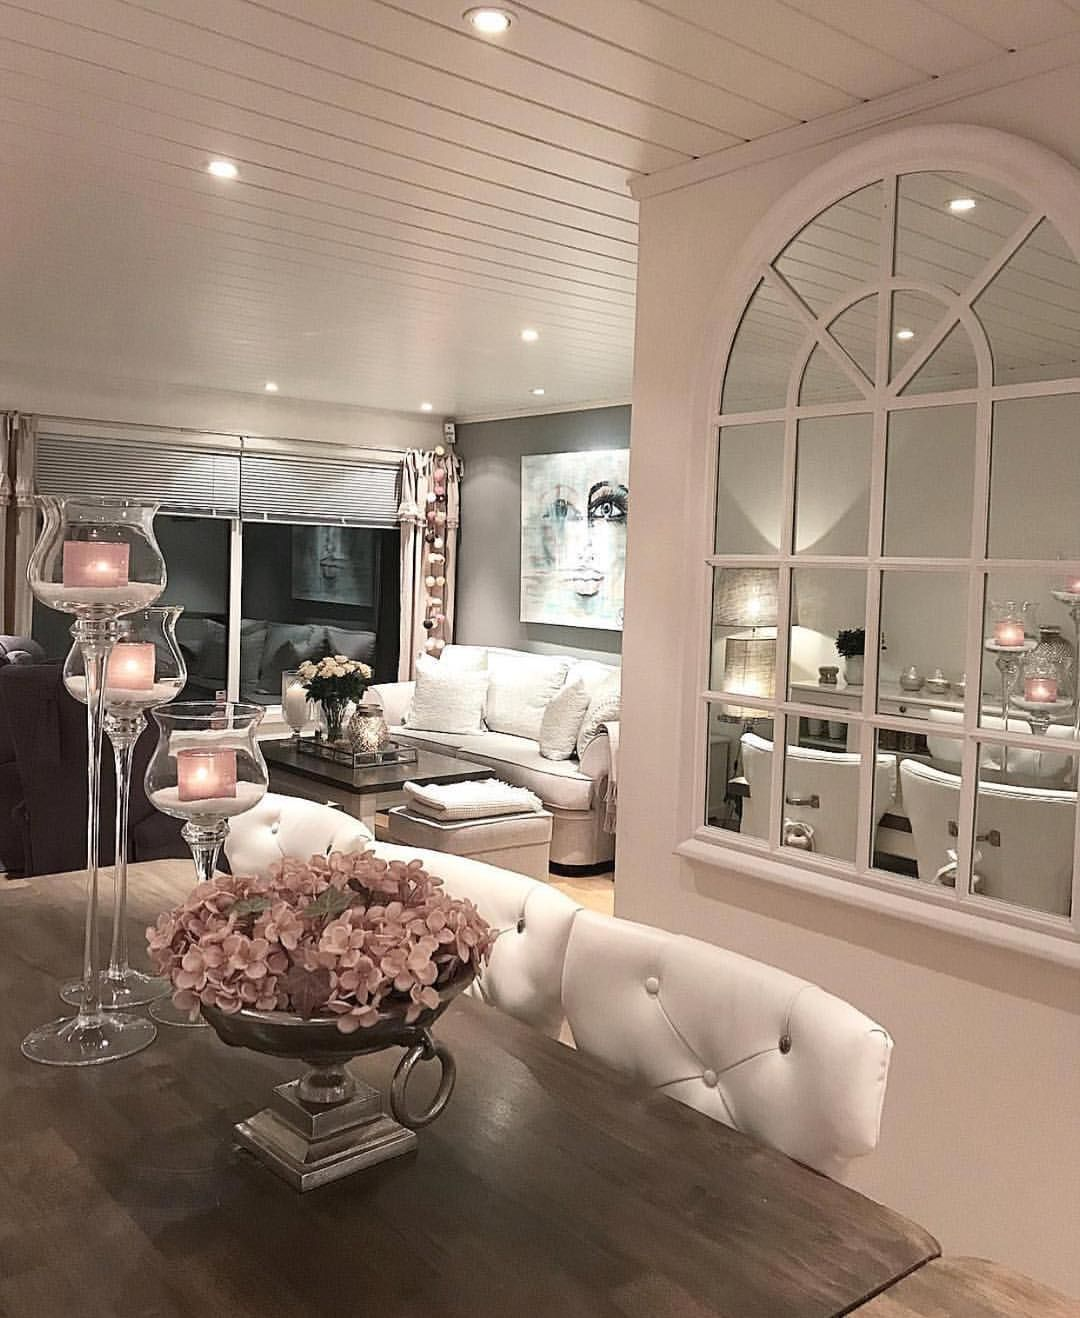 Wohnideen Instagram 2 912 likes 13 comments interiorstyled interiorstyled on